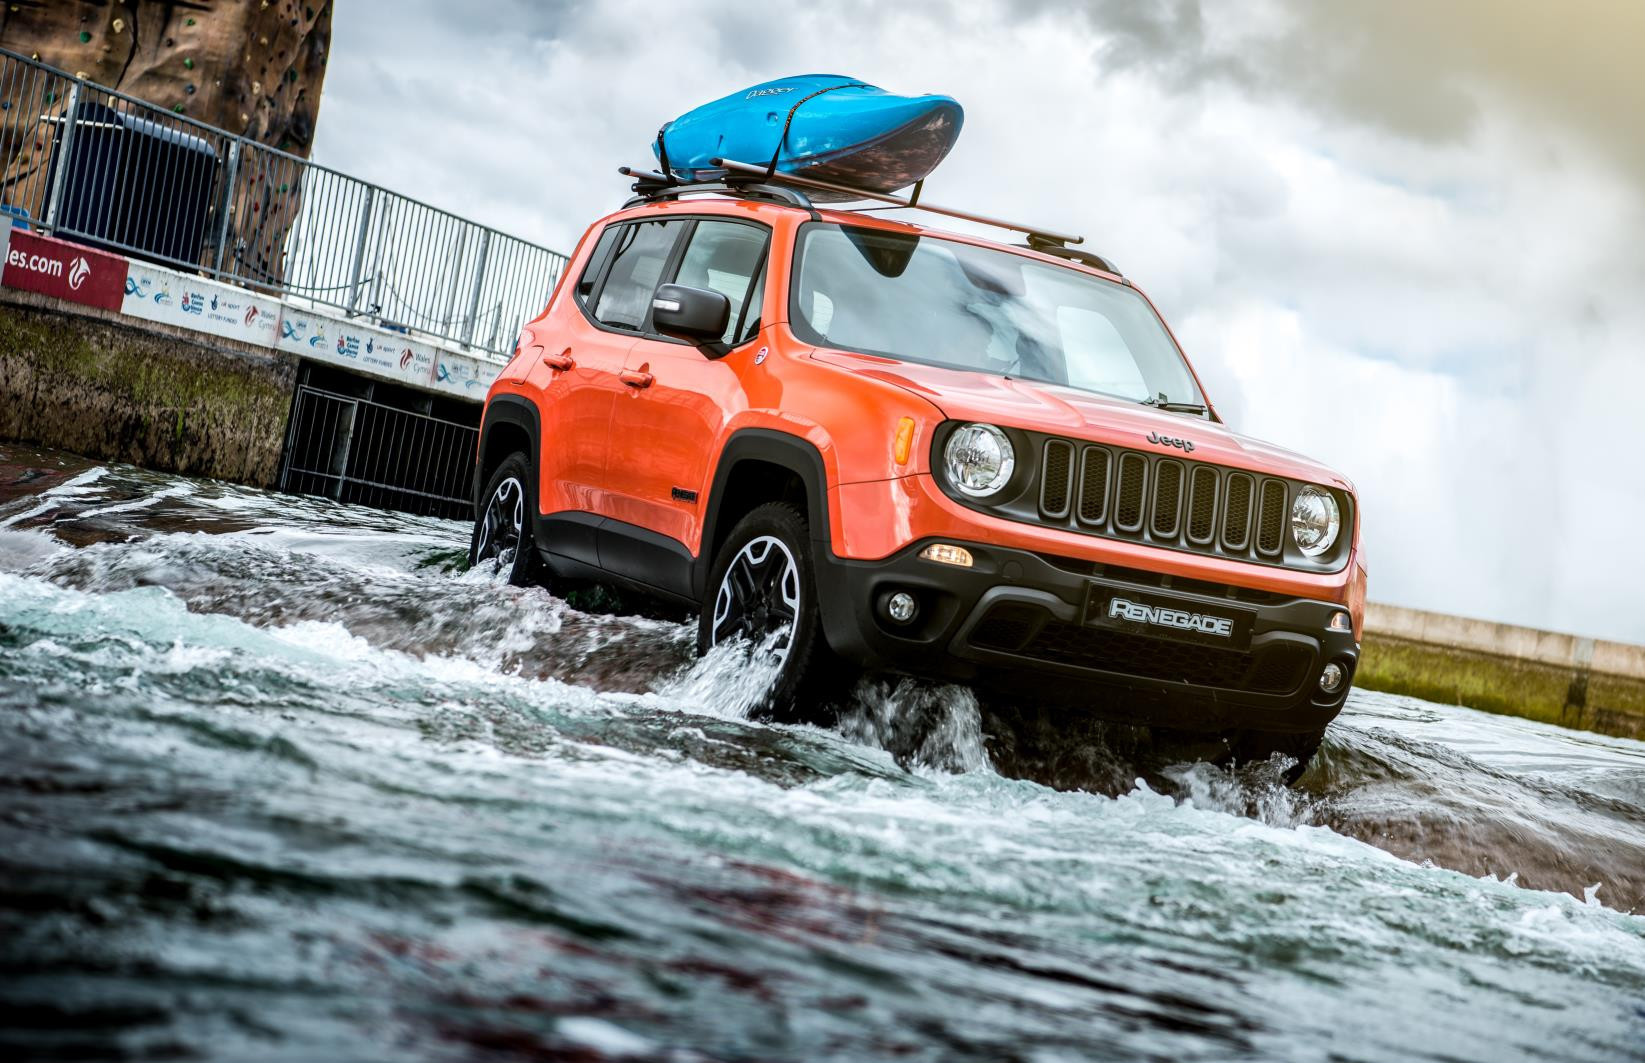 Orange Jeep Renegade crossing a weir with a canoe on the roof